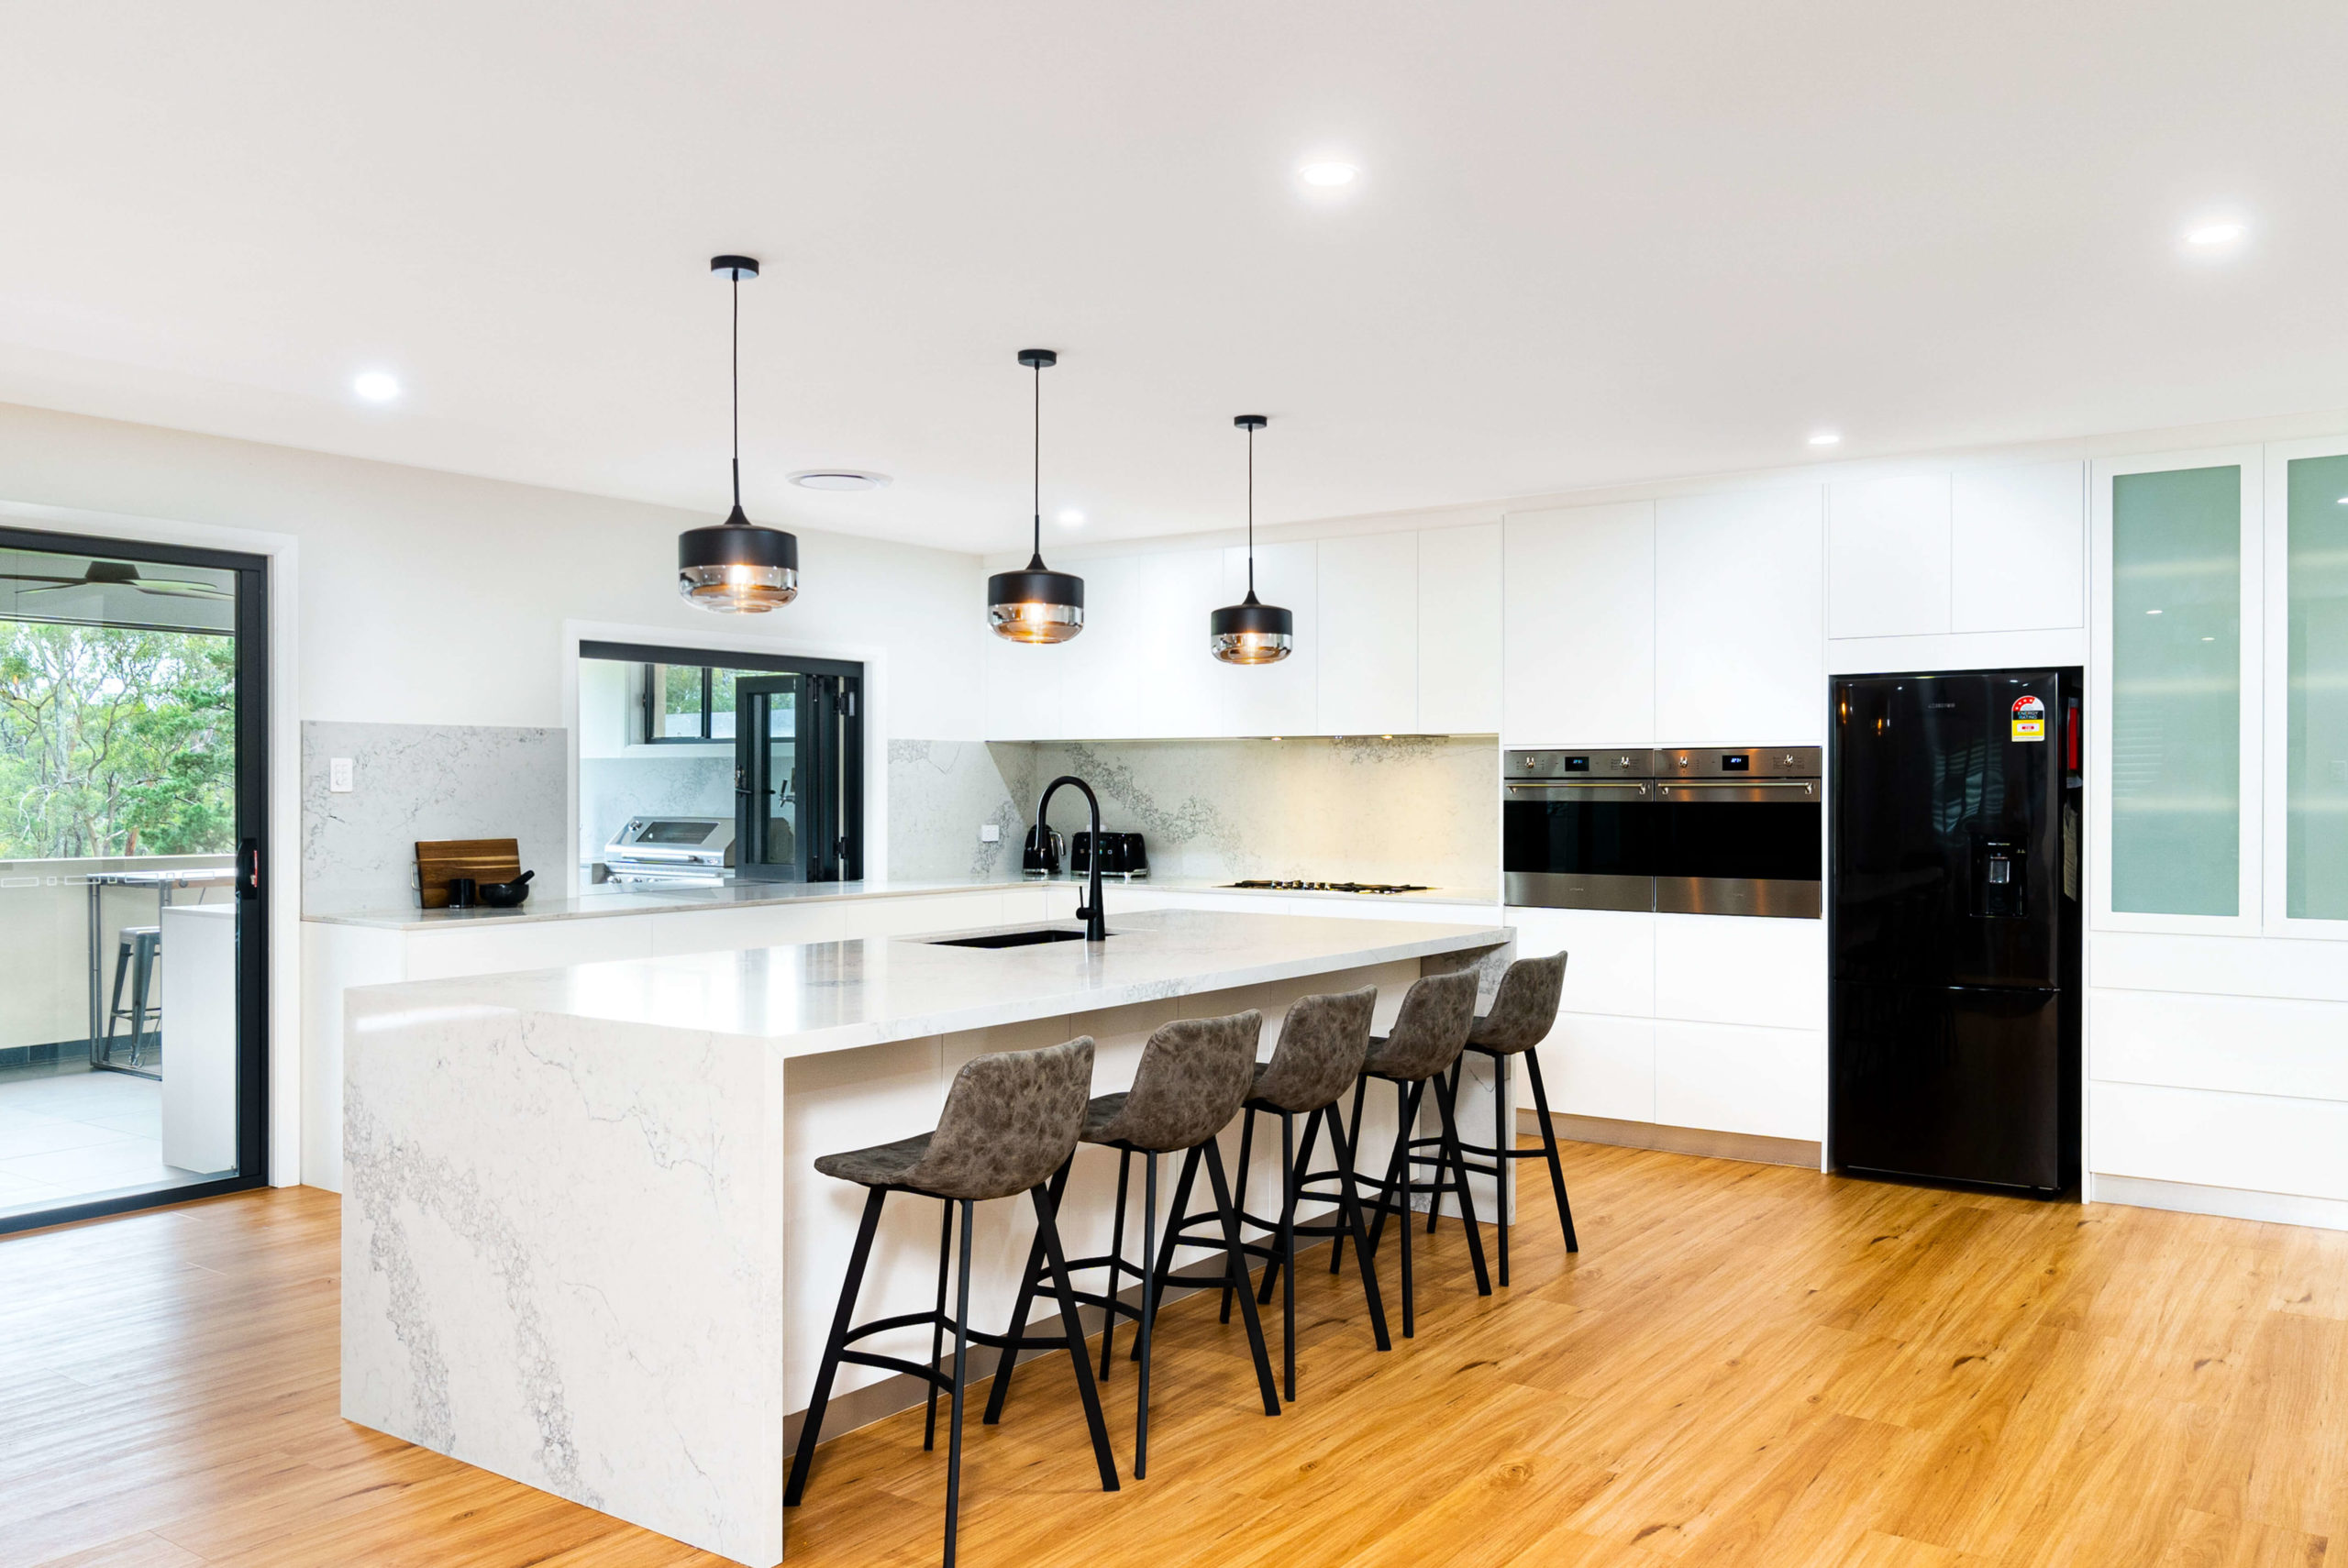 kitchen image with stools and benchtop